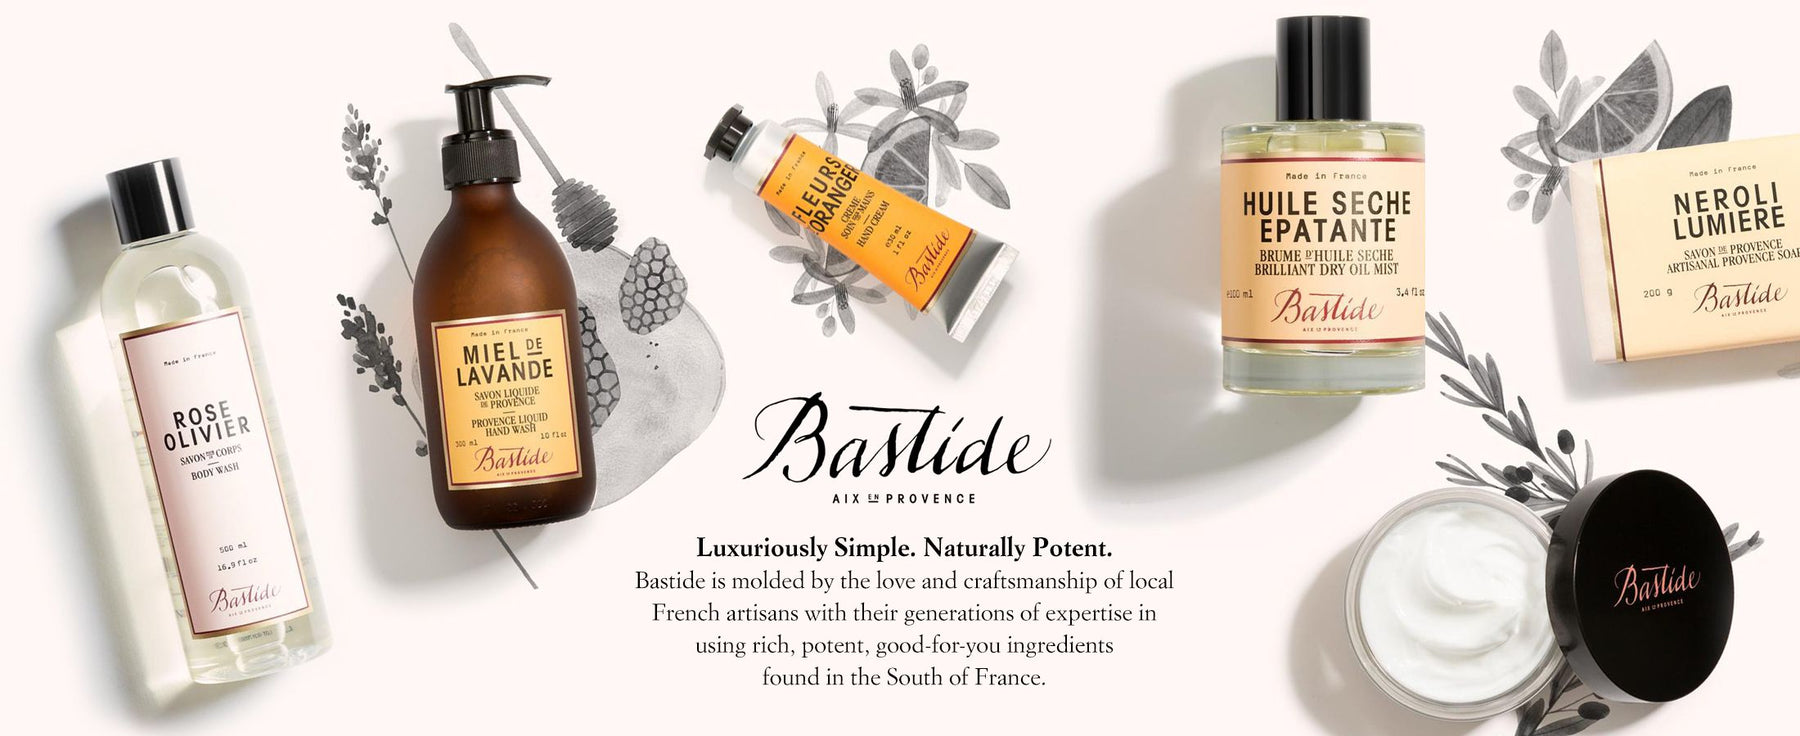 Bastide - Luxuriously Simple. Naturally Potent. Bastide is molded by the love and craftsmanship of local French artisans with their generations of expertise in using rich, potent, good-for-you ingredients found in the South of France.